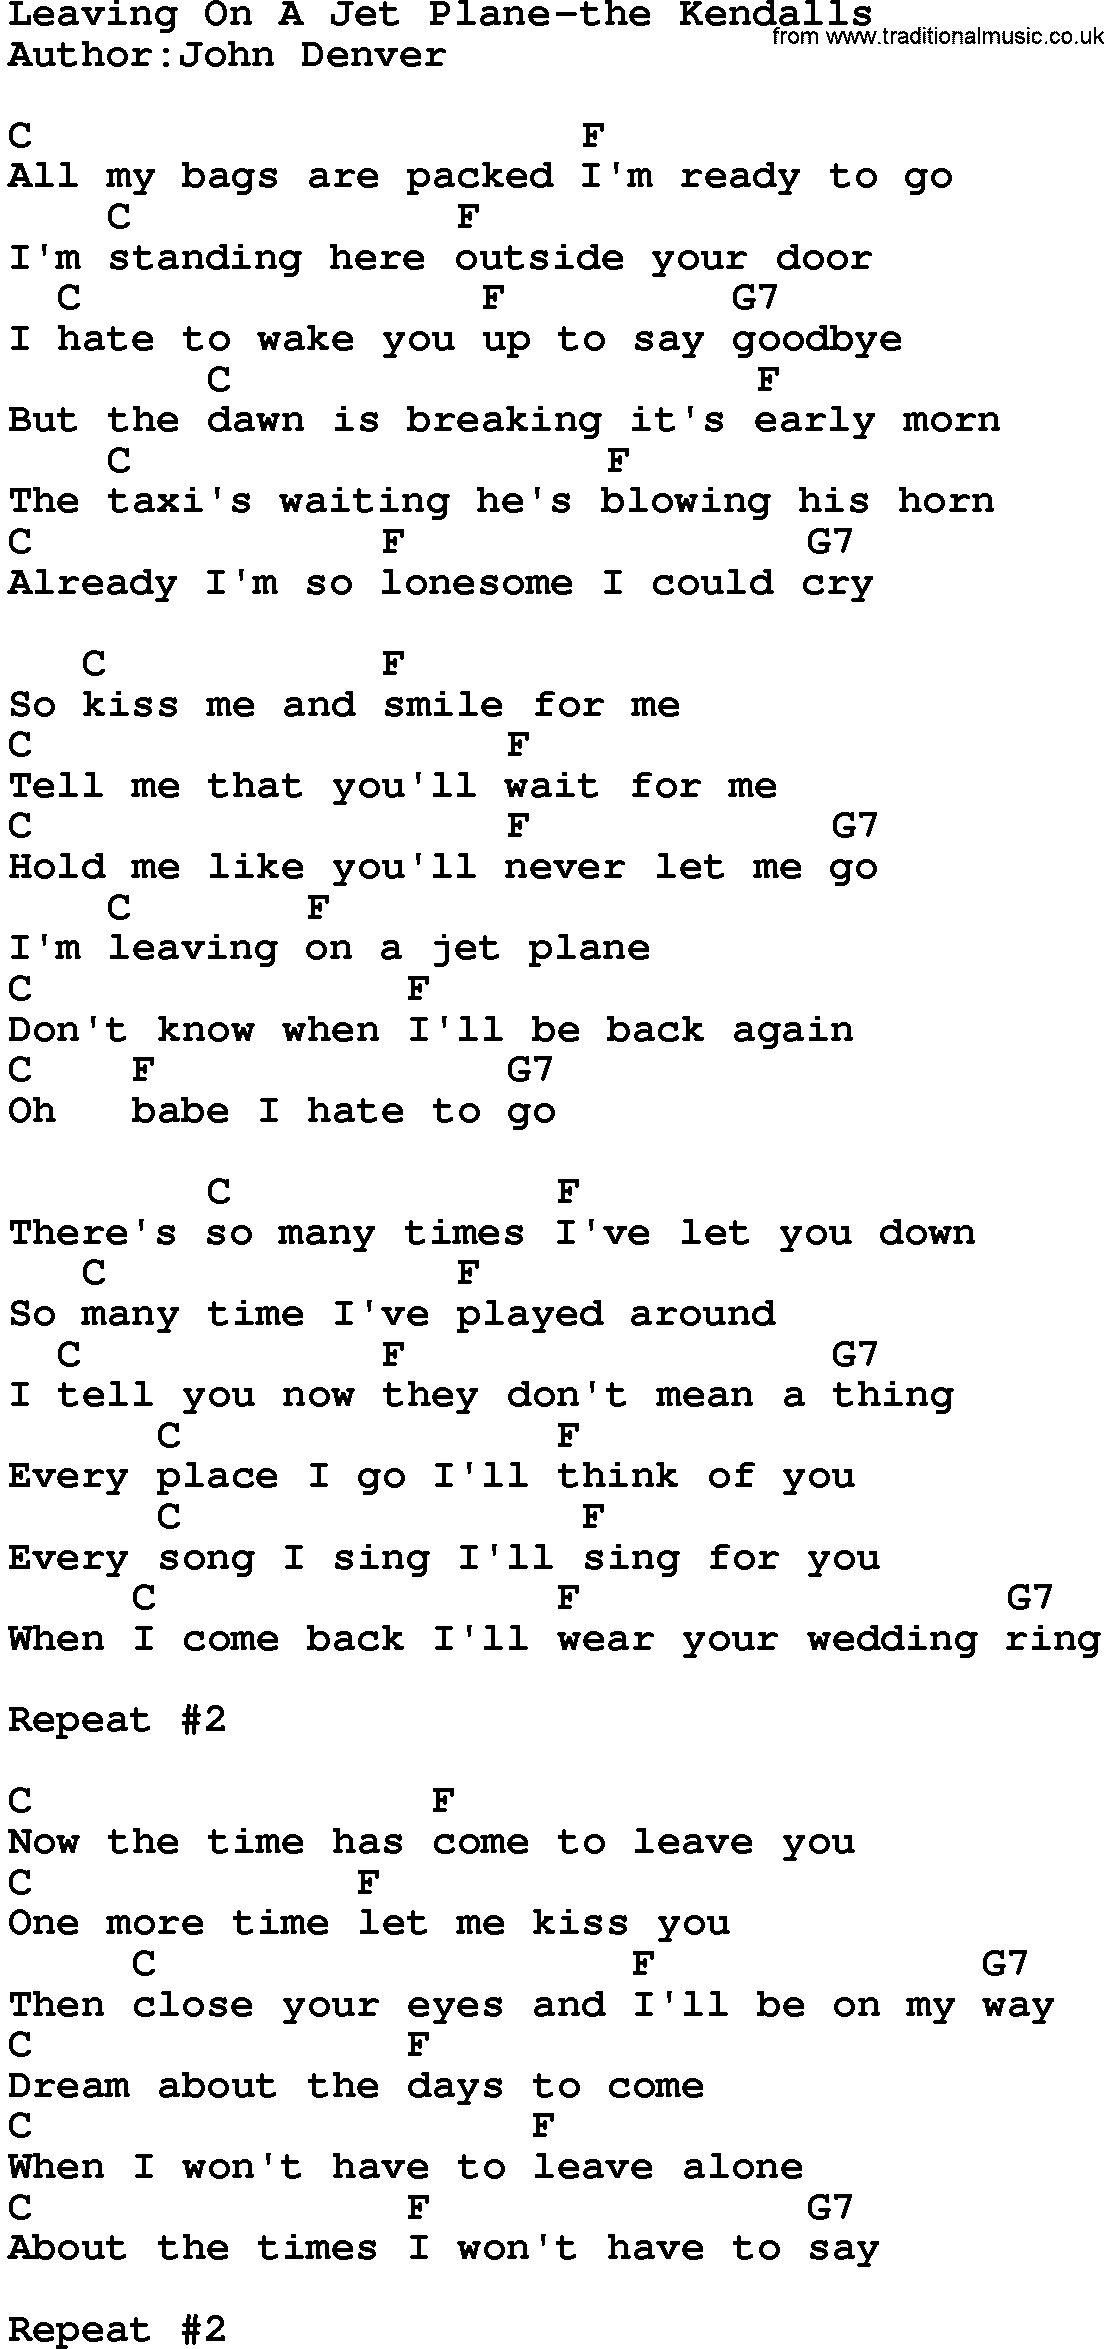 Country Music Leaving A Jet Plane The Kendalls lyrics and chords